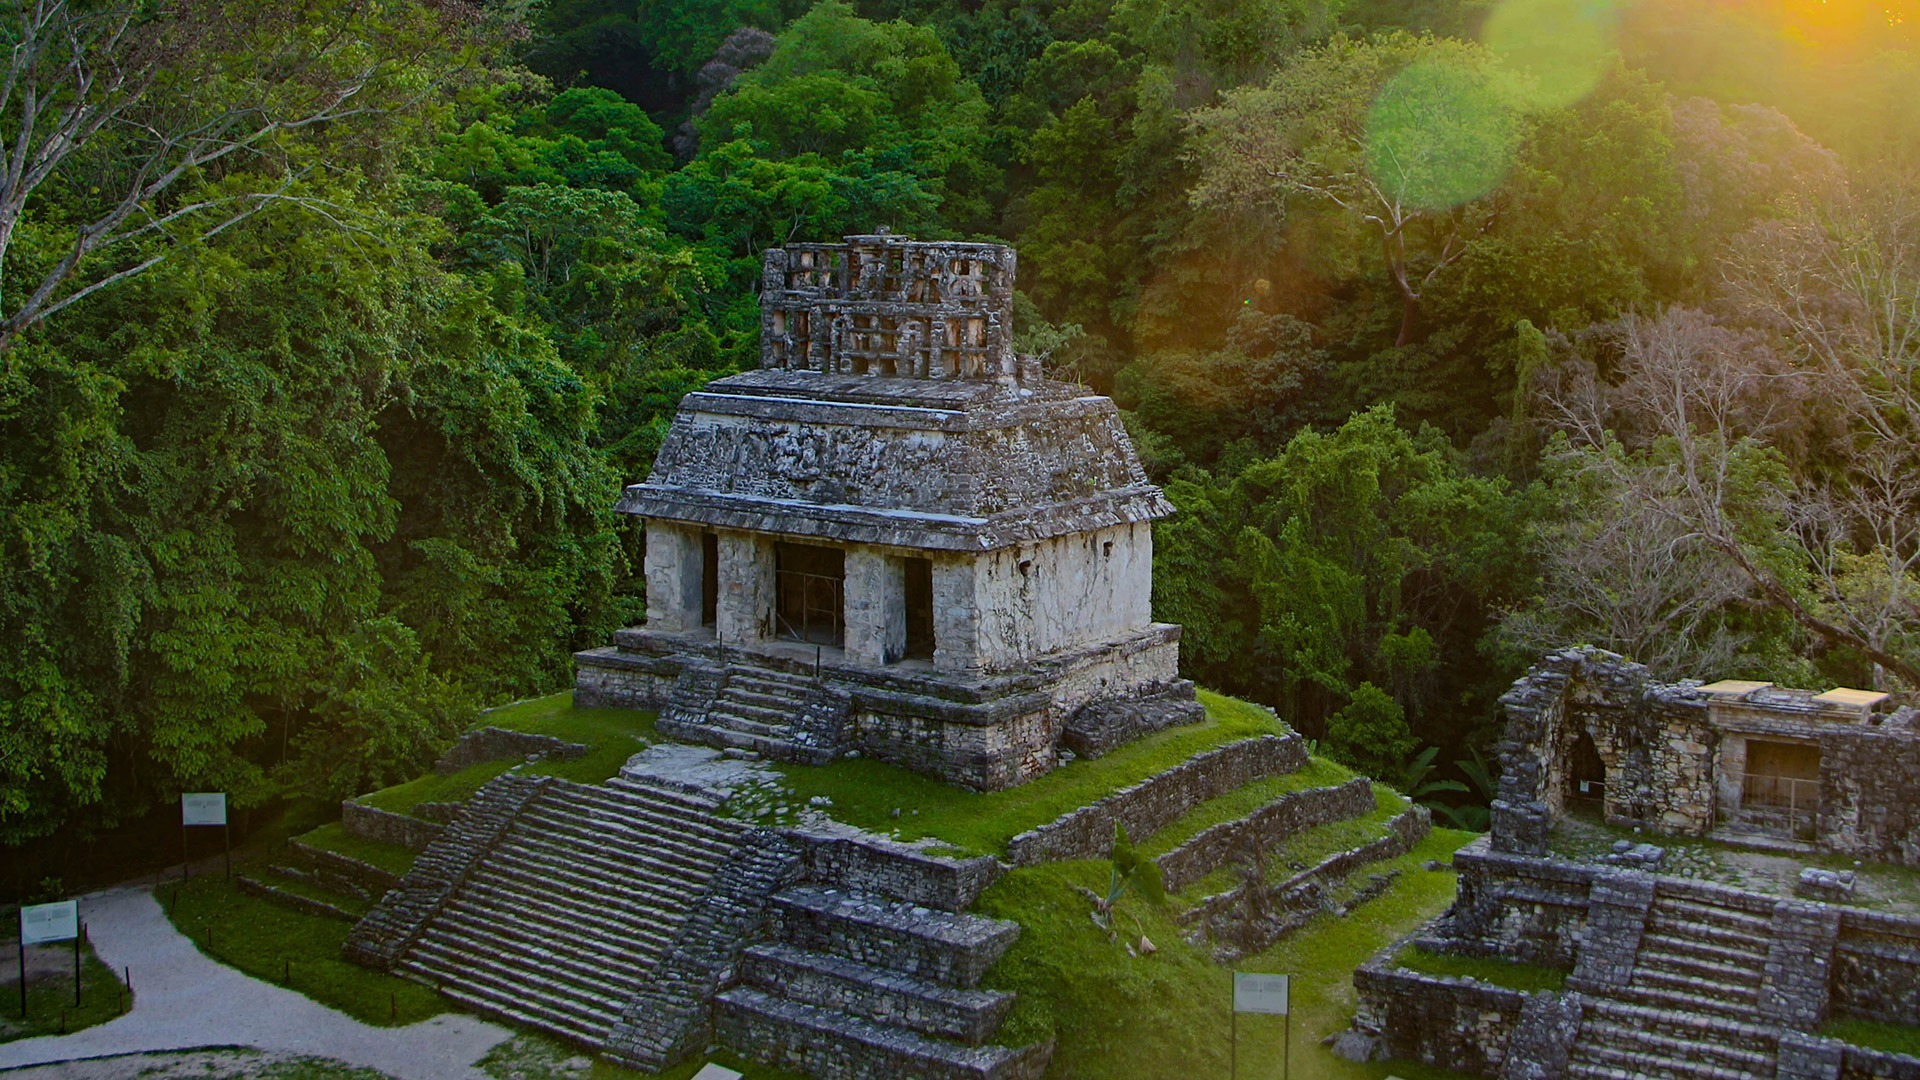 Temple of the Count at the Maya ruins of Palenque, Mexico